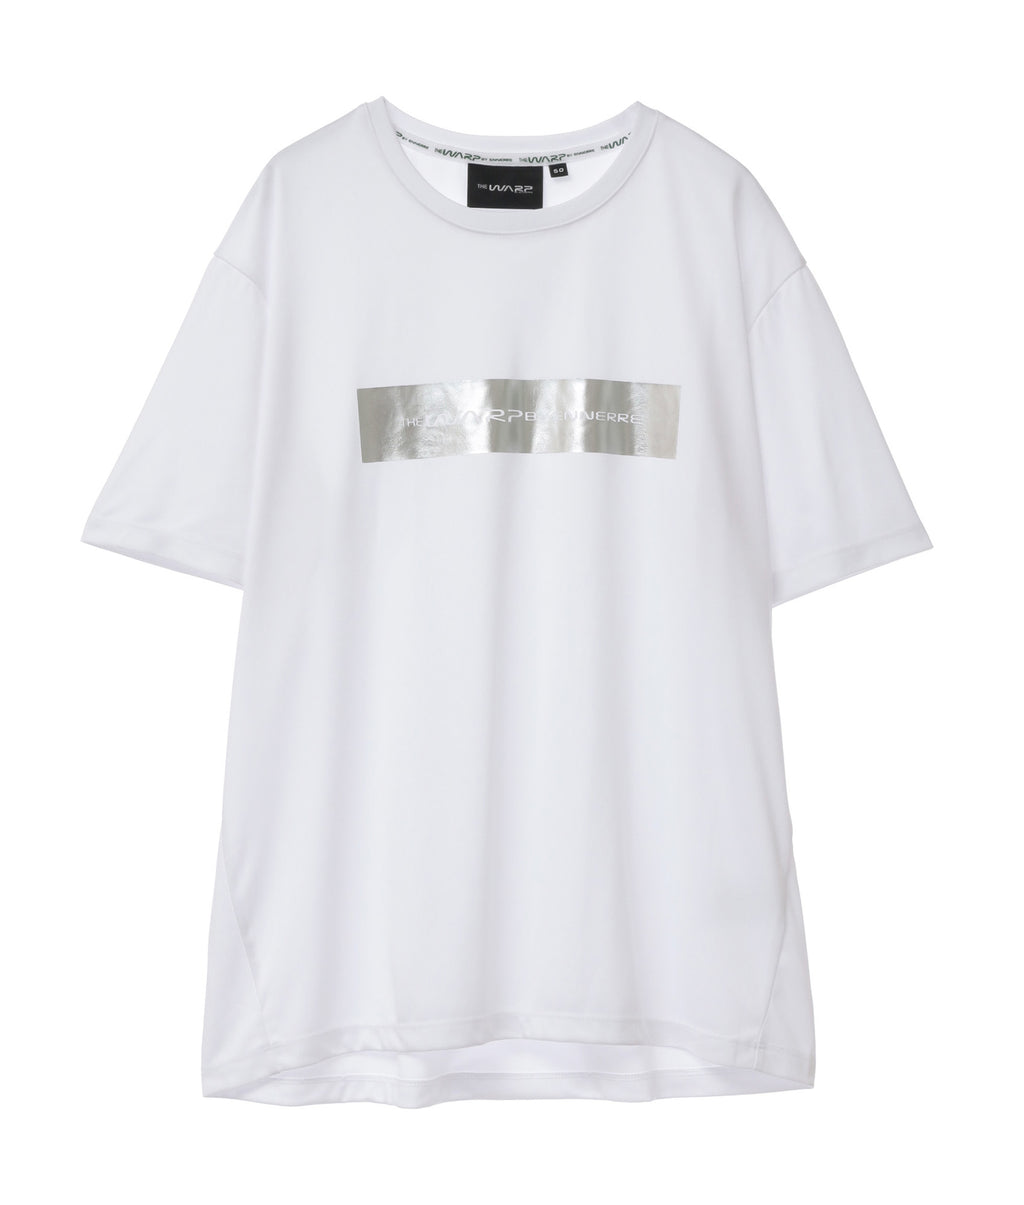 SS Graphic T (Square)